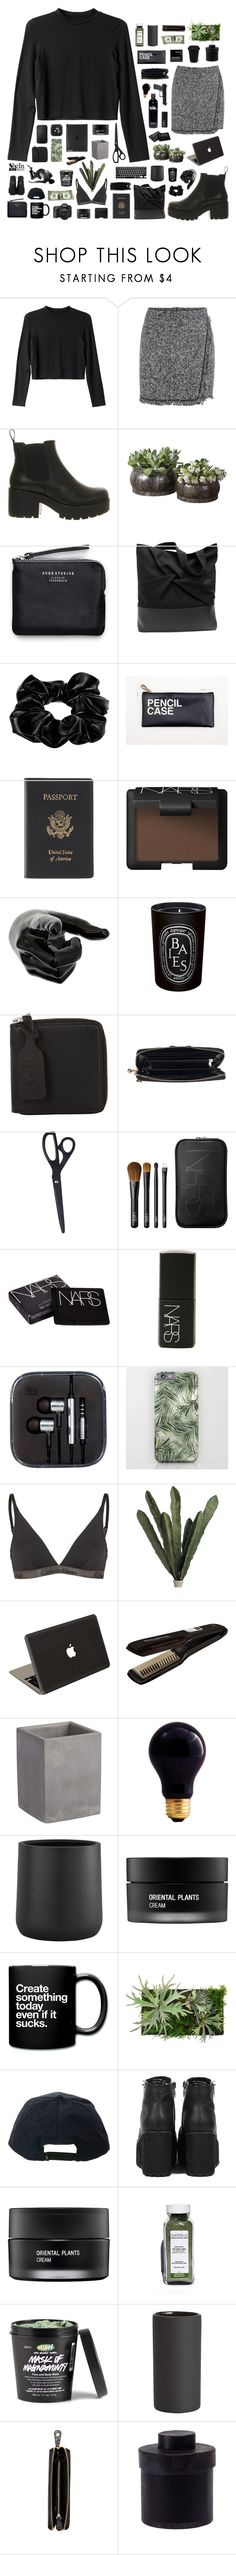 """""""Karma"""" by blood-drops ❤ liked on Polyvore featuring Monki, Vagabond, Acne Studios, River Island, Royce Leather, NARS Cosmetics, Diptyque, HAY, Calvin Klein and Jamie Clawson"""